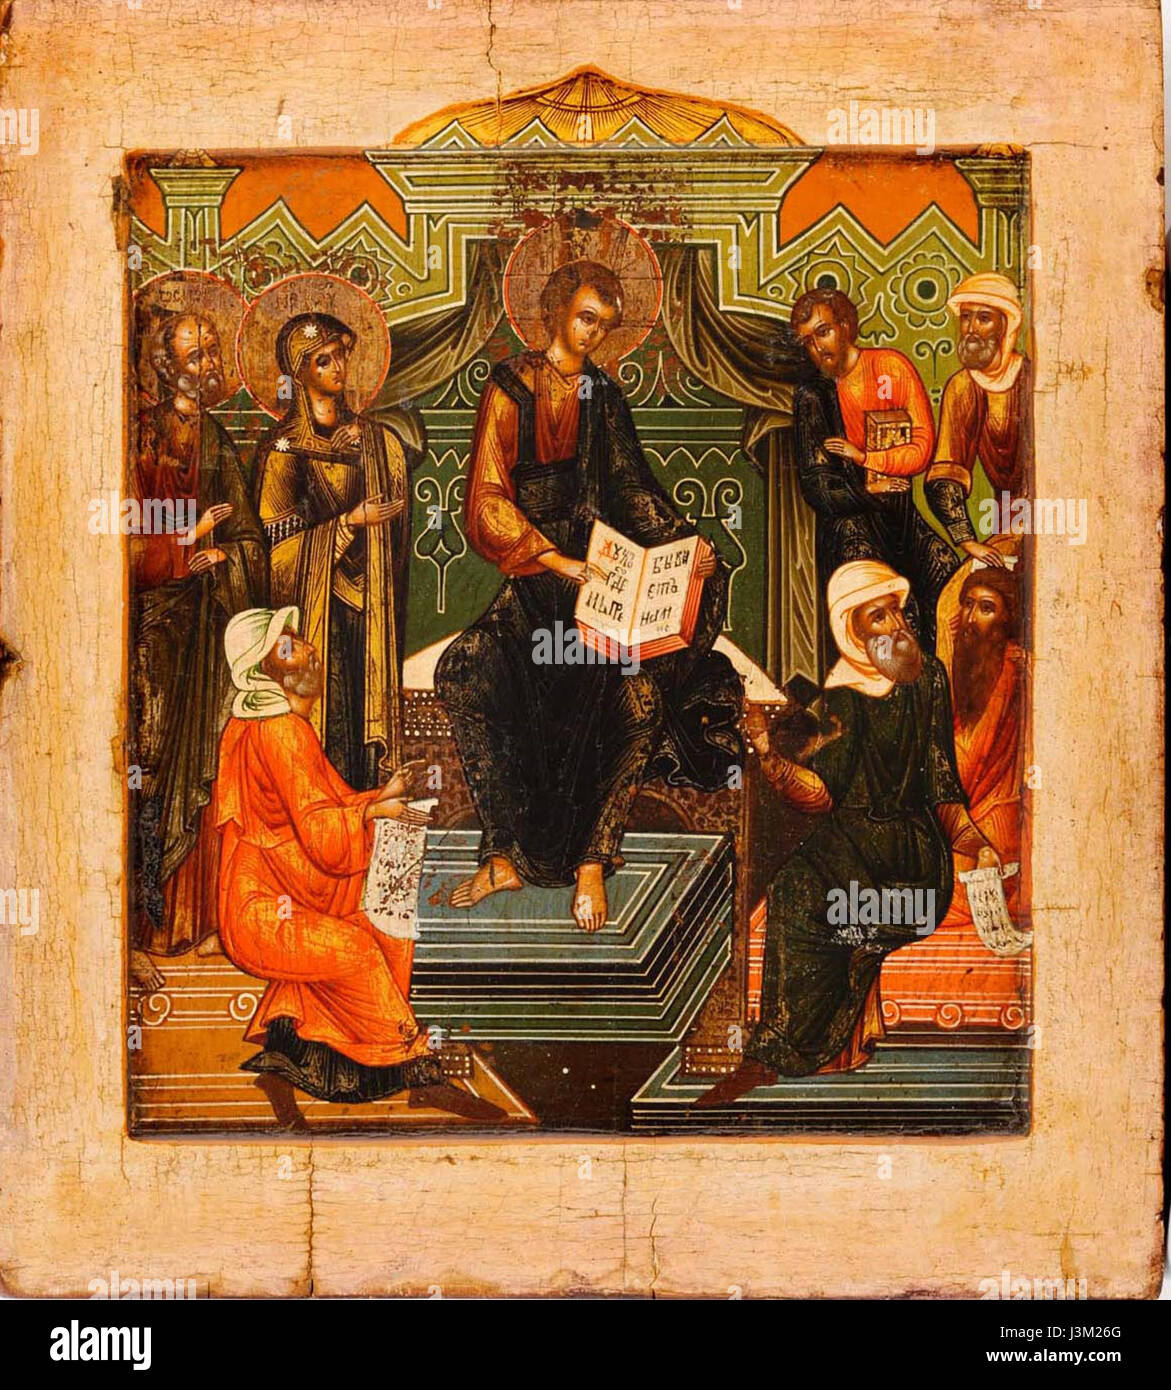 Icon of Jesus among the Doctors (Mstera, c. 1800) - Stock Image